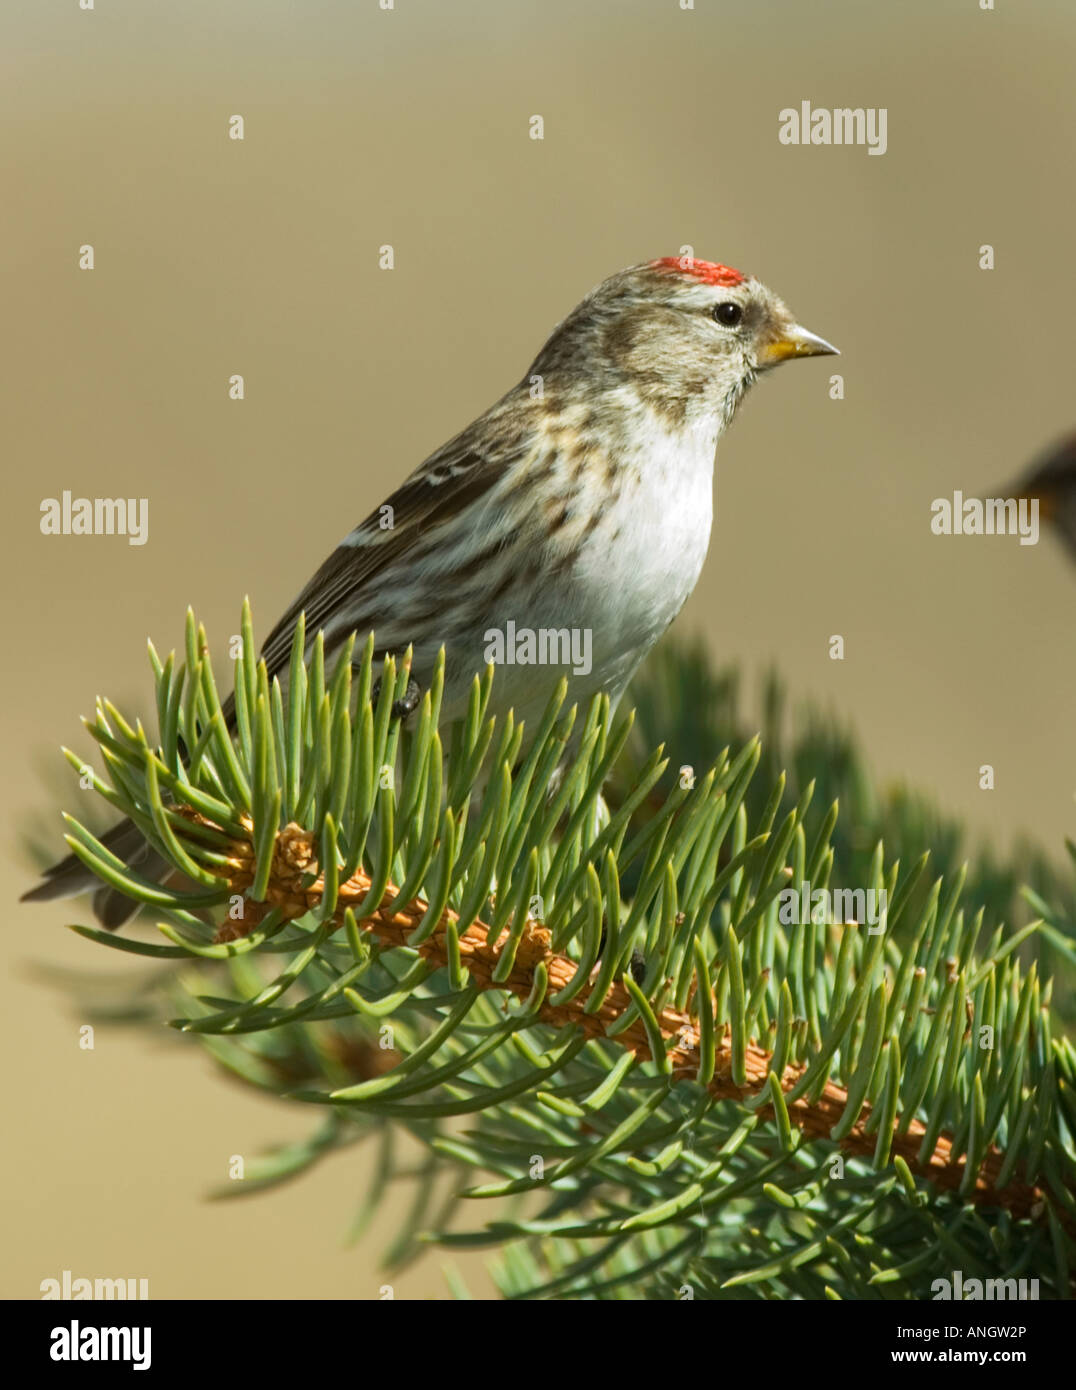 Common Redpole (Carduelis flammen) Female. A small Finch of northern forests and tundra which often forms flocks - Stock Image